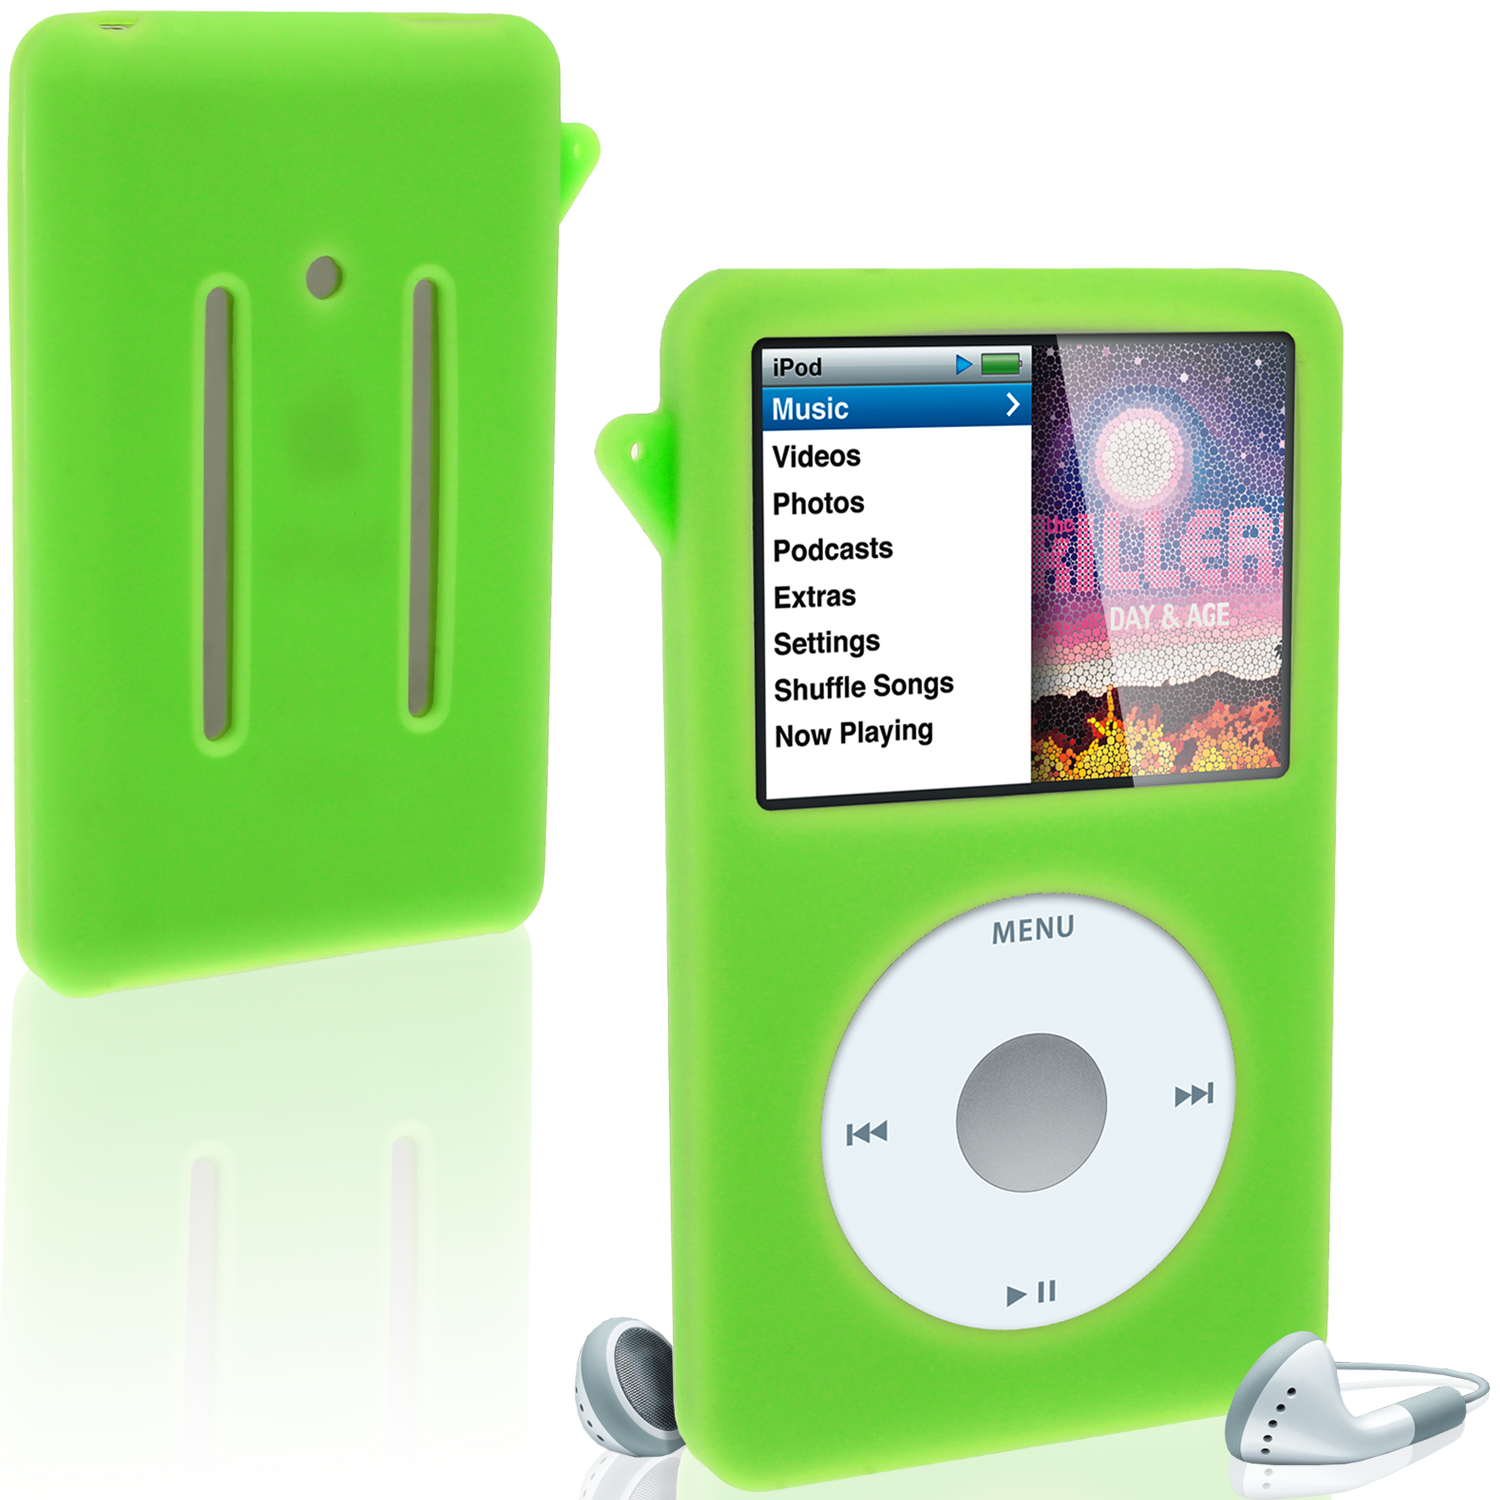 iGadgitz Green Silicone Skin Case for Apple iPod Classic 80gb, 120gb & latest 160gb + Screen Protector & Lanyard